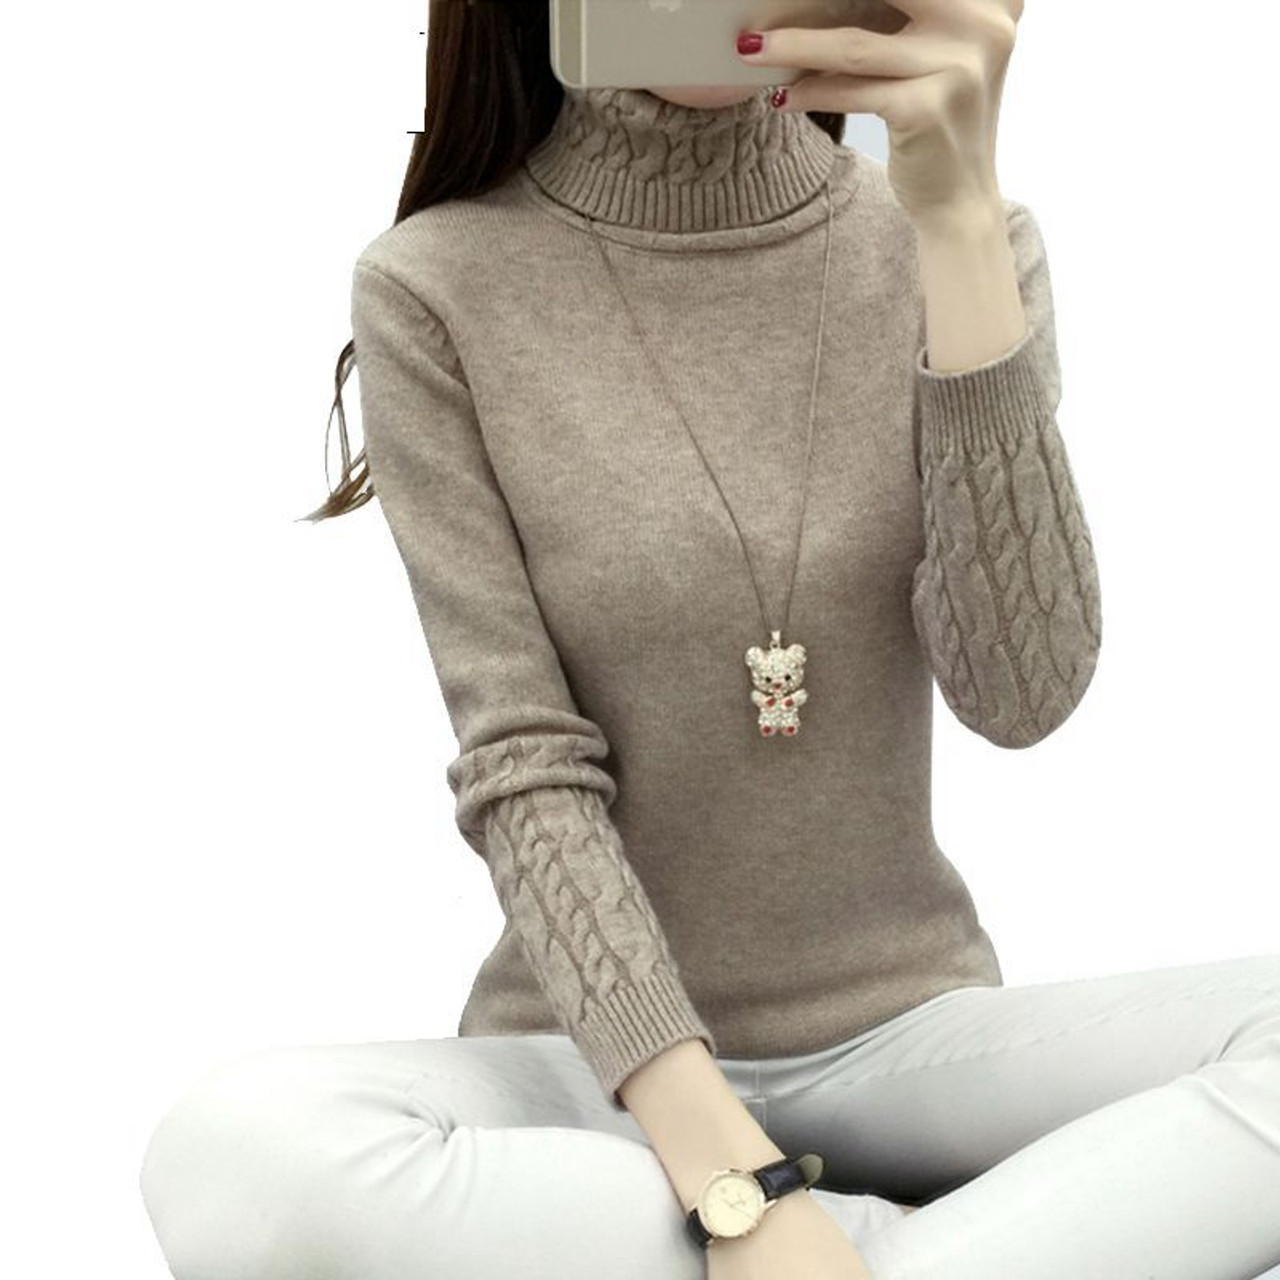 OHCLOTHING Women Turtleneck Winter Sweater Women 2018 Long Sleeve Knitted  Women Sweaters And Pullovers Female Jumper Tricot Tops